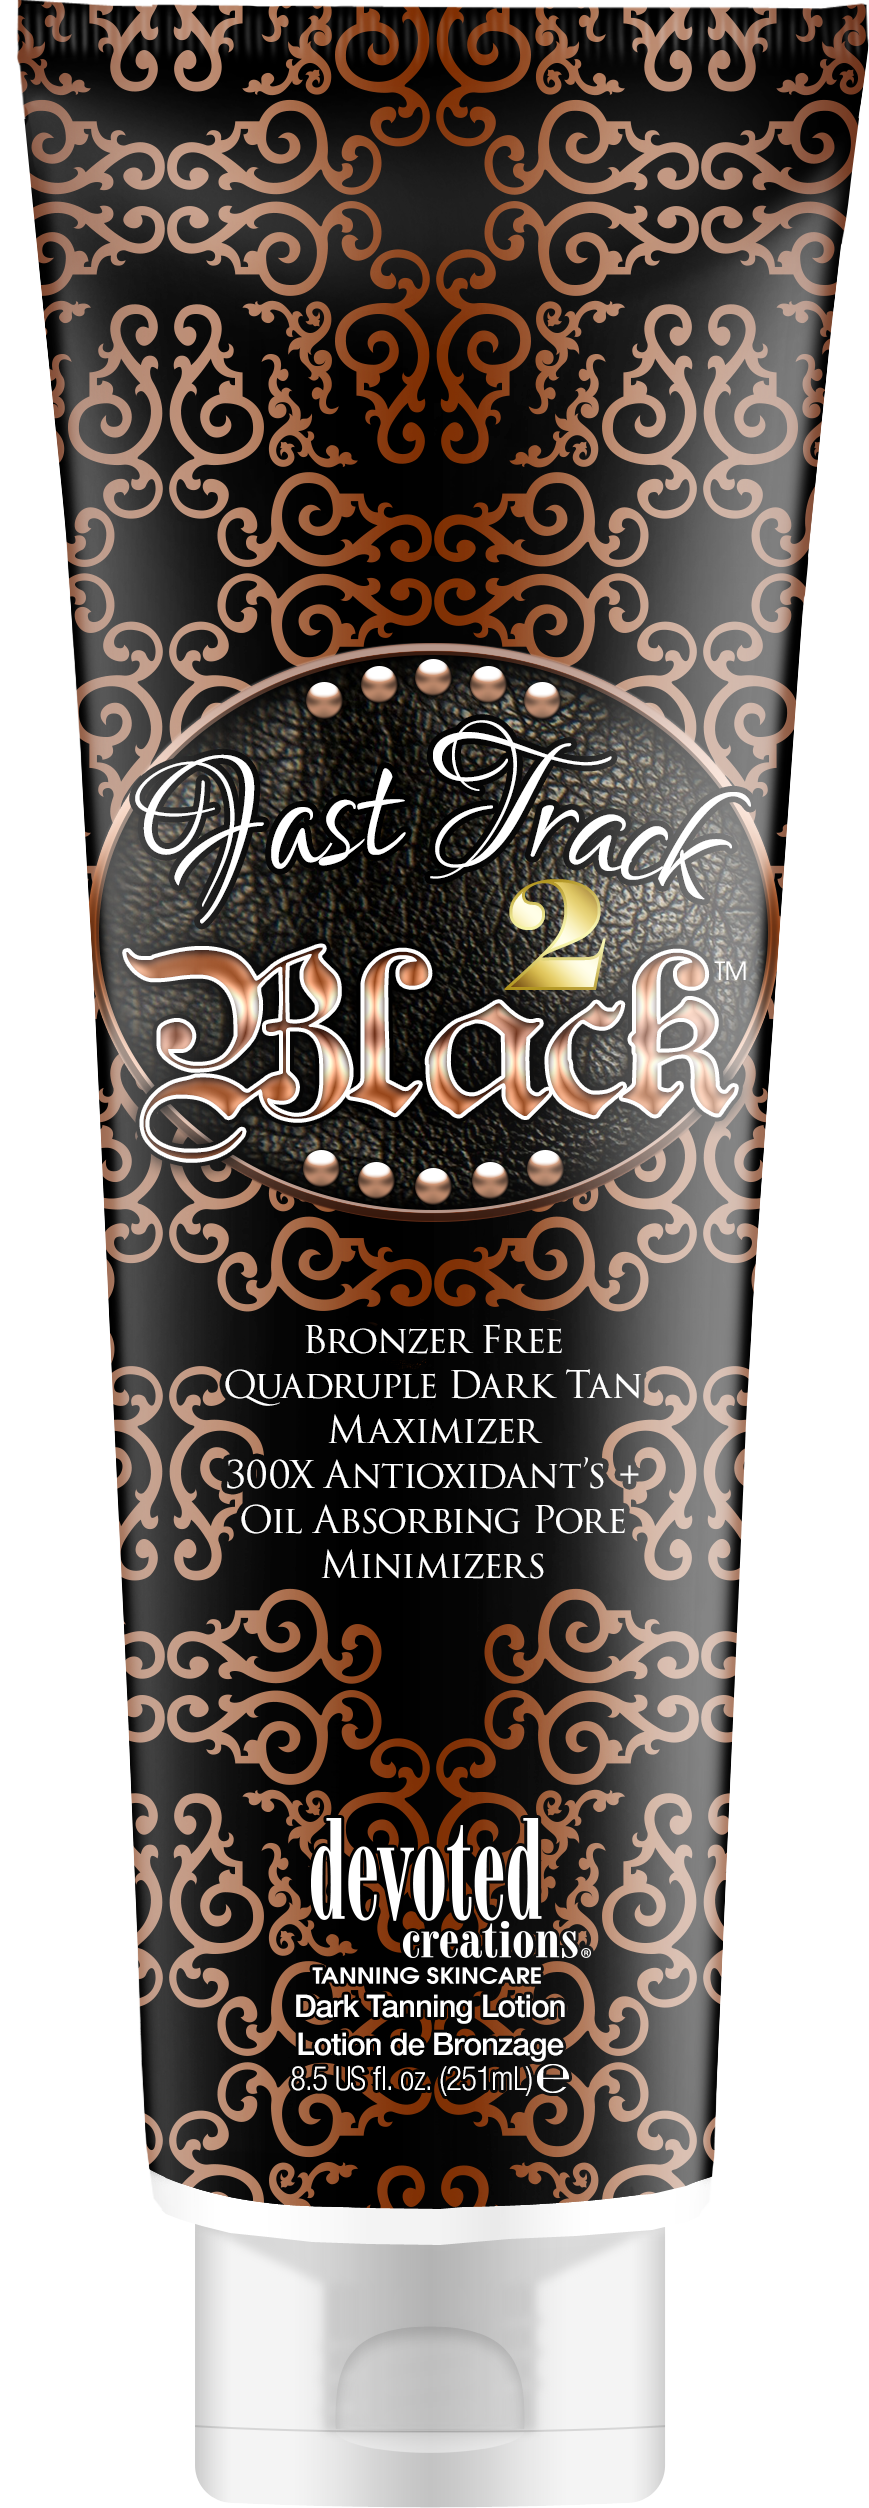 Fast Track 2 Black Bronzer Free Quadruple Dark Tan Maximizer